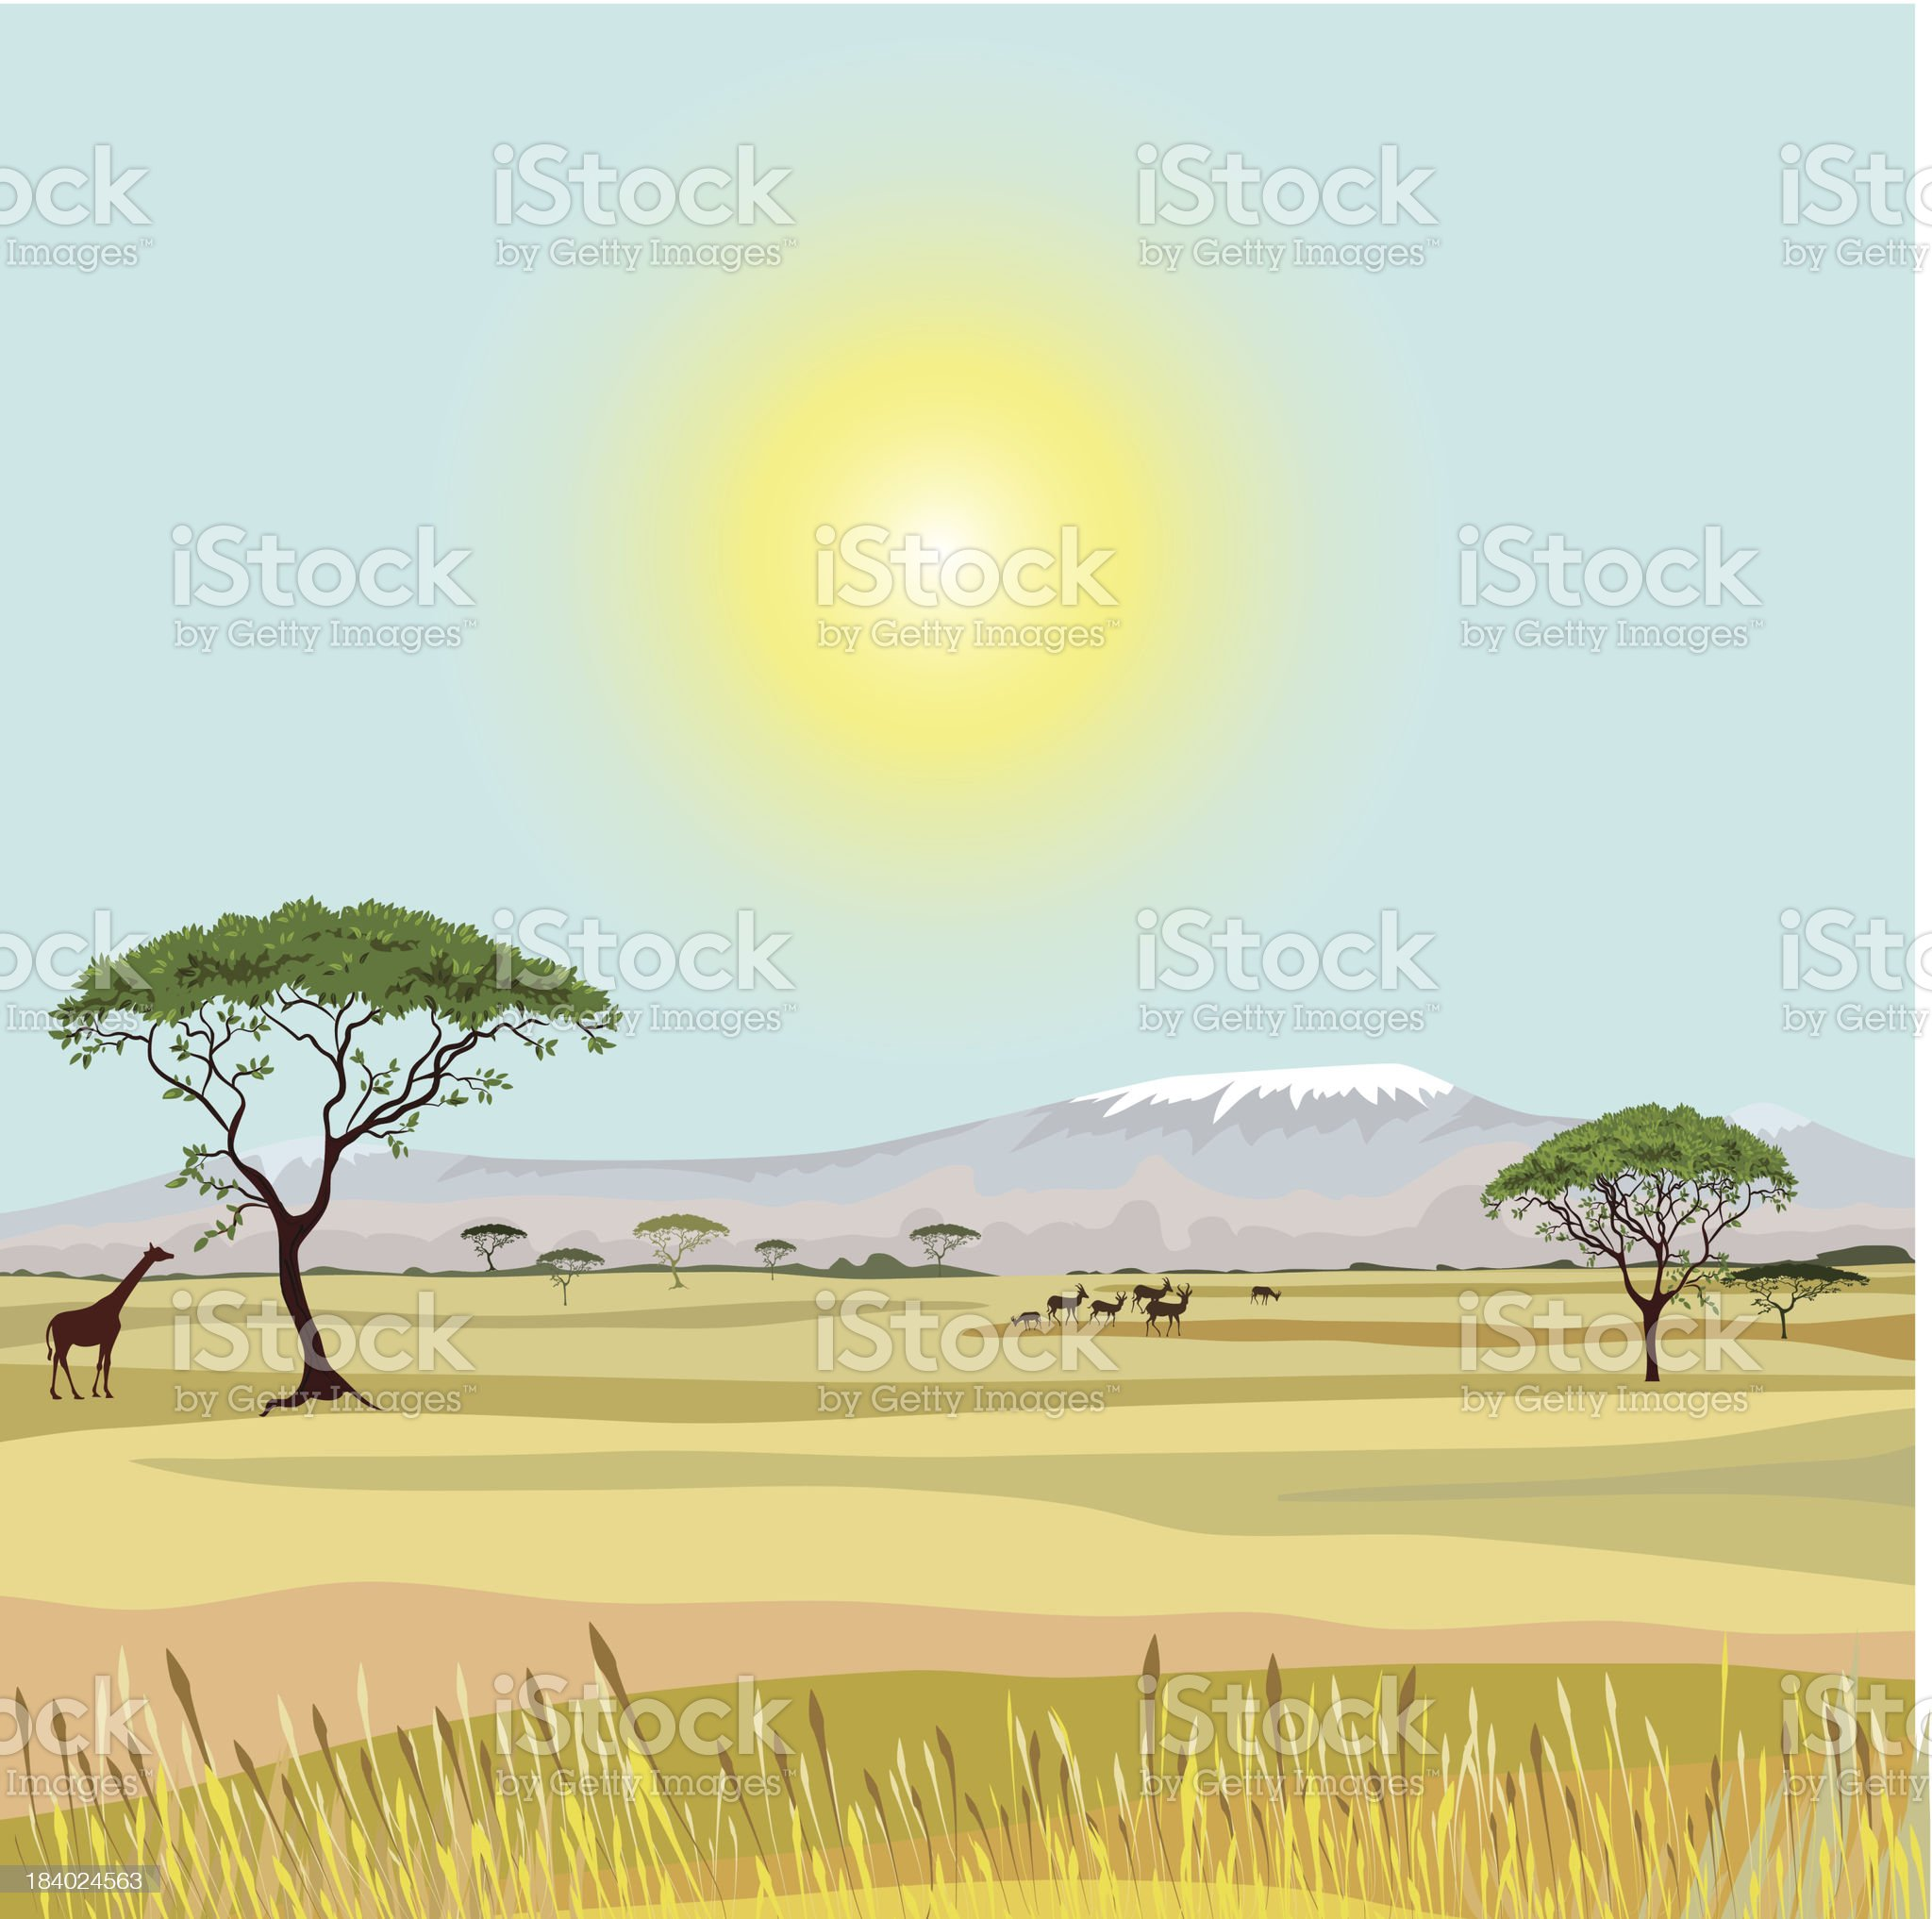 African Mountain idealistic landscape royalty-free stock vector art